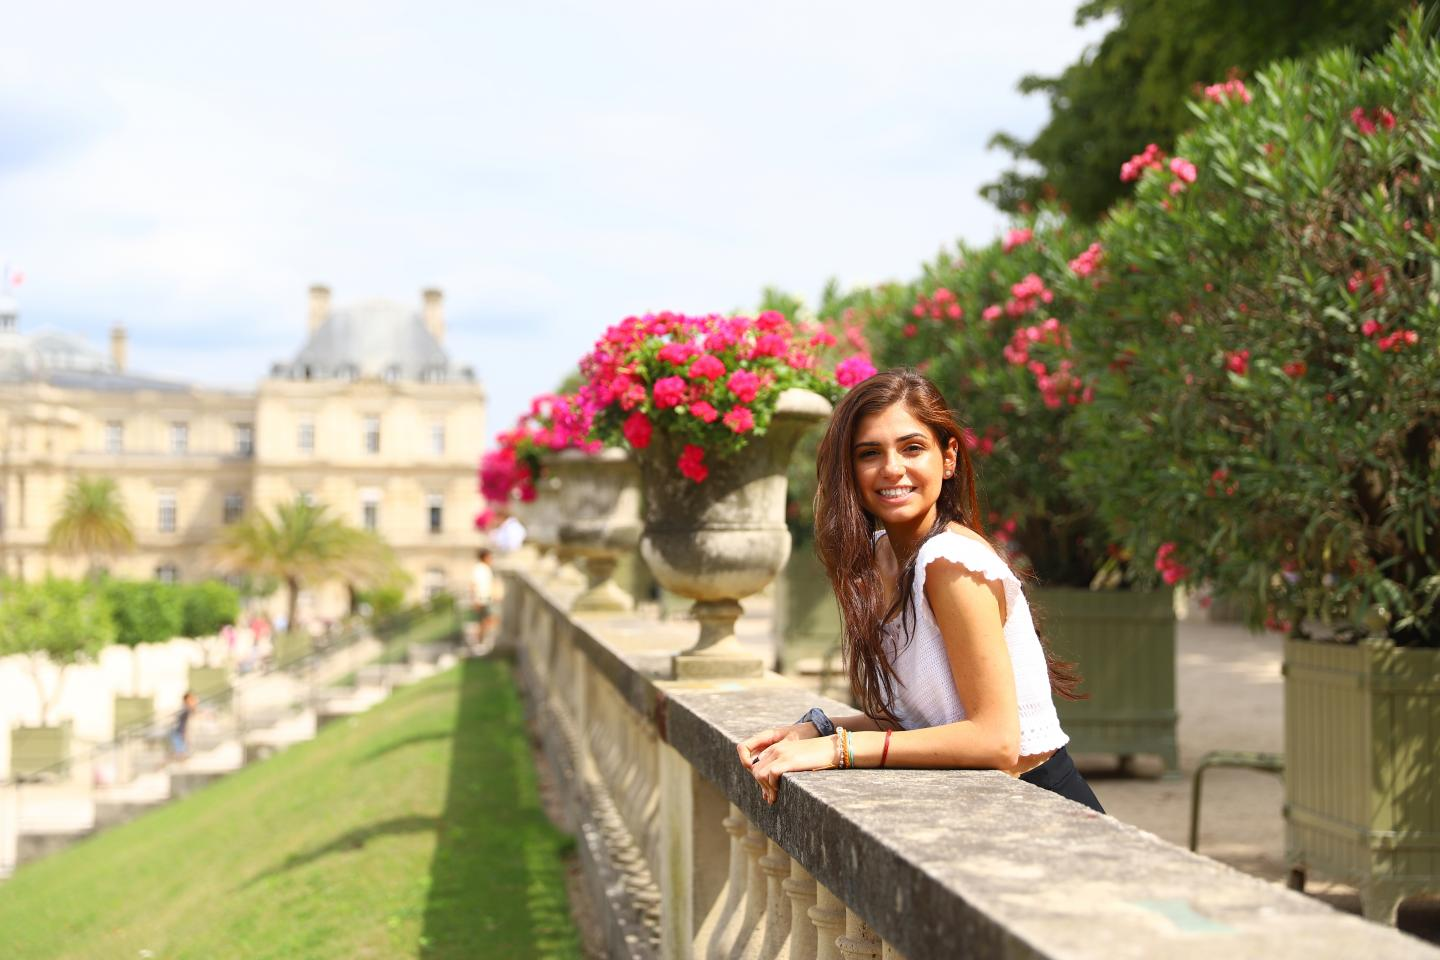 Teenage traveler in Luxembourg Gardens Paris on summer travel photography program